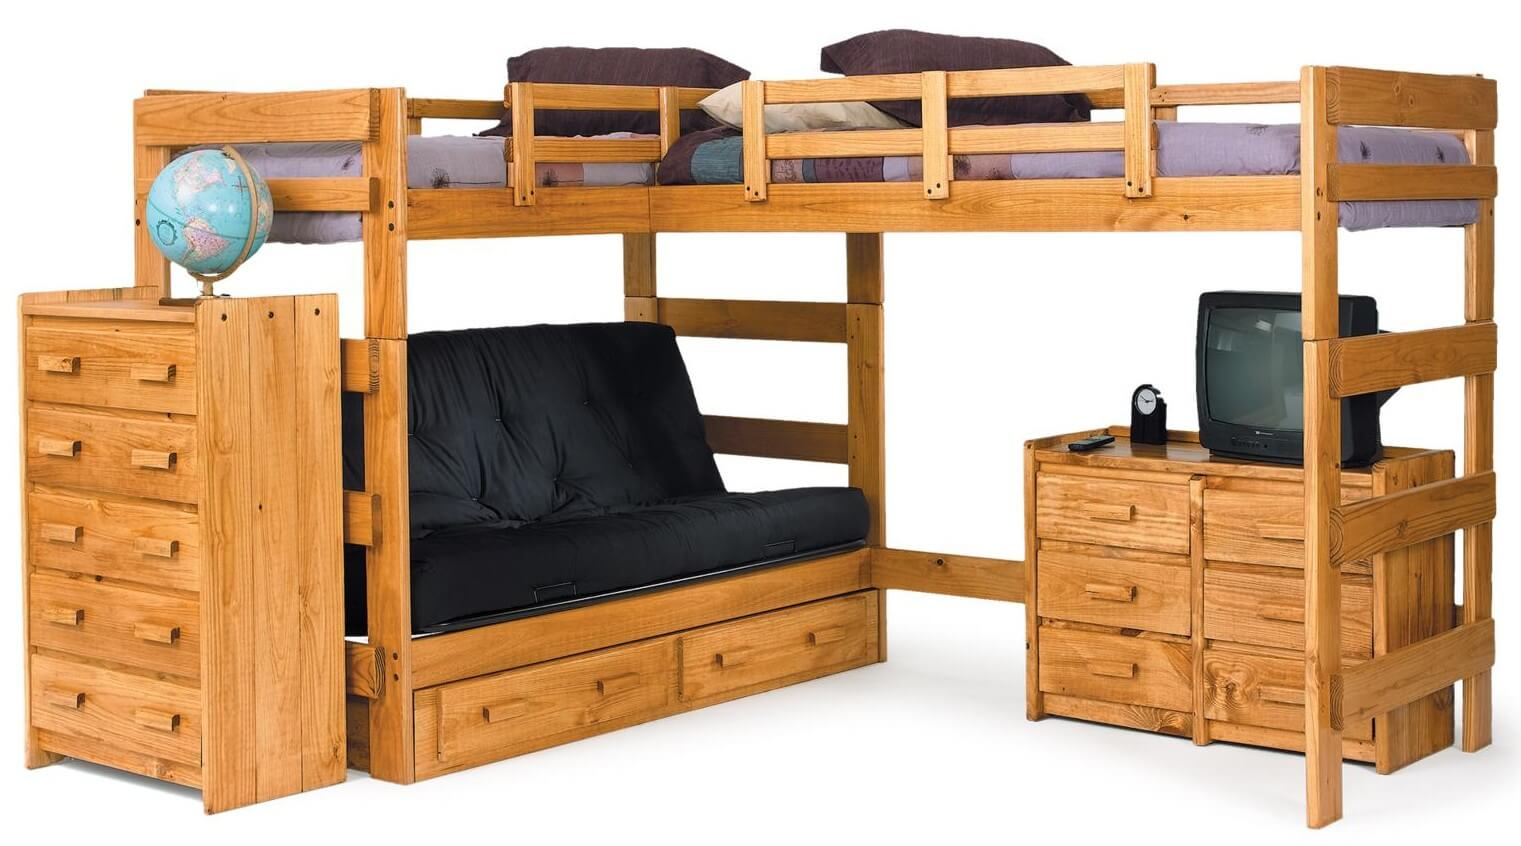 Here's an example of an adjacent L-shape bunk design where the both beds are elevated like a loft bed offering more space underneath... in the this case a small sofa/futon (for more sleeping options) and a full dresser.